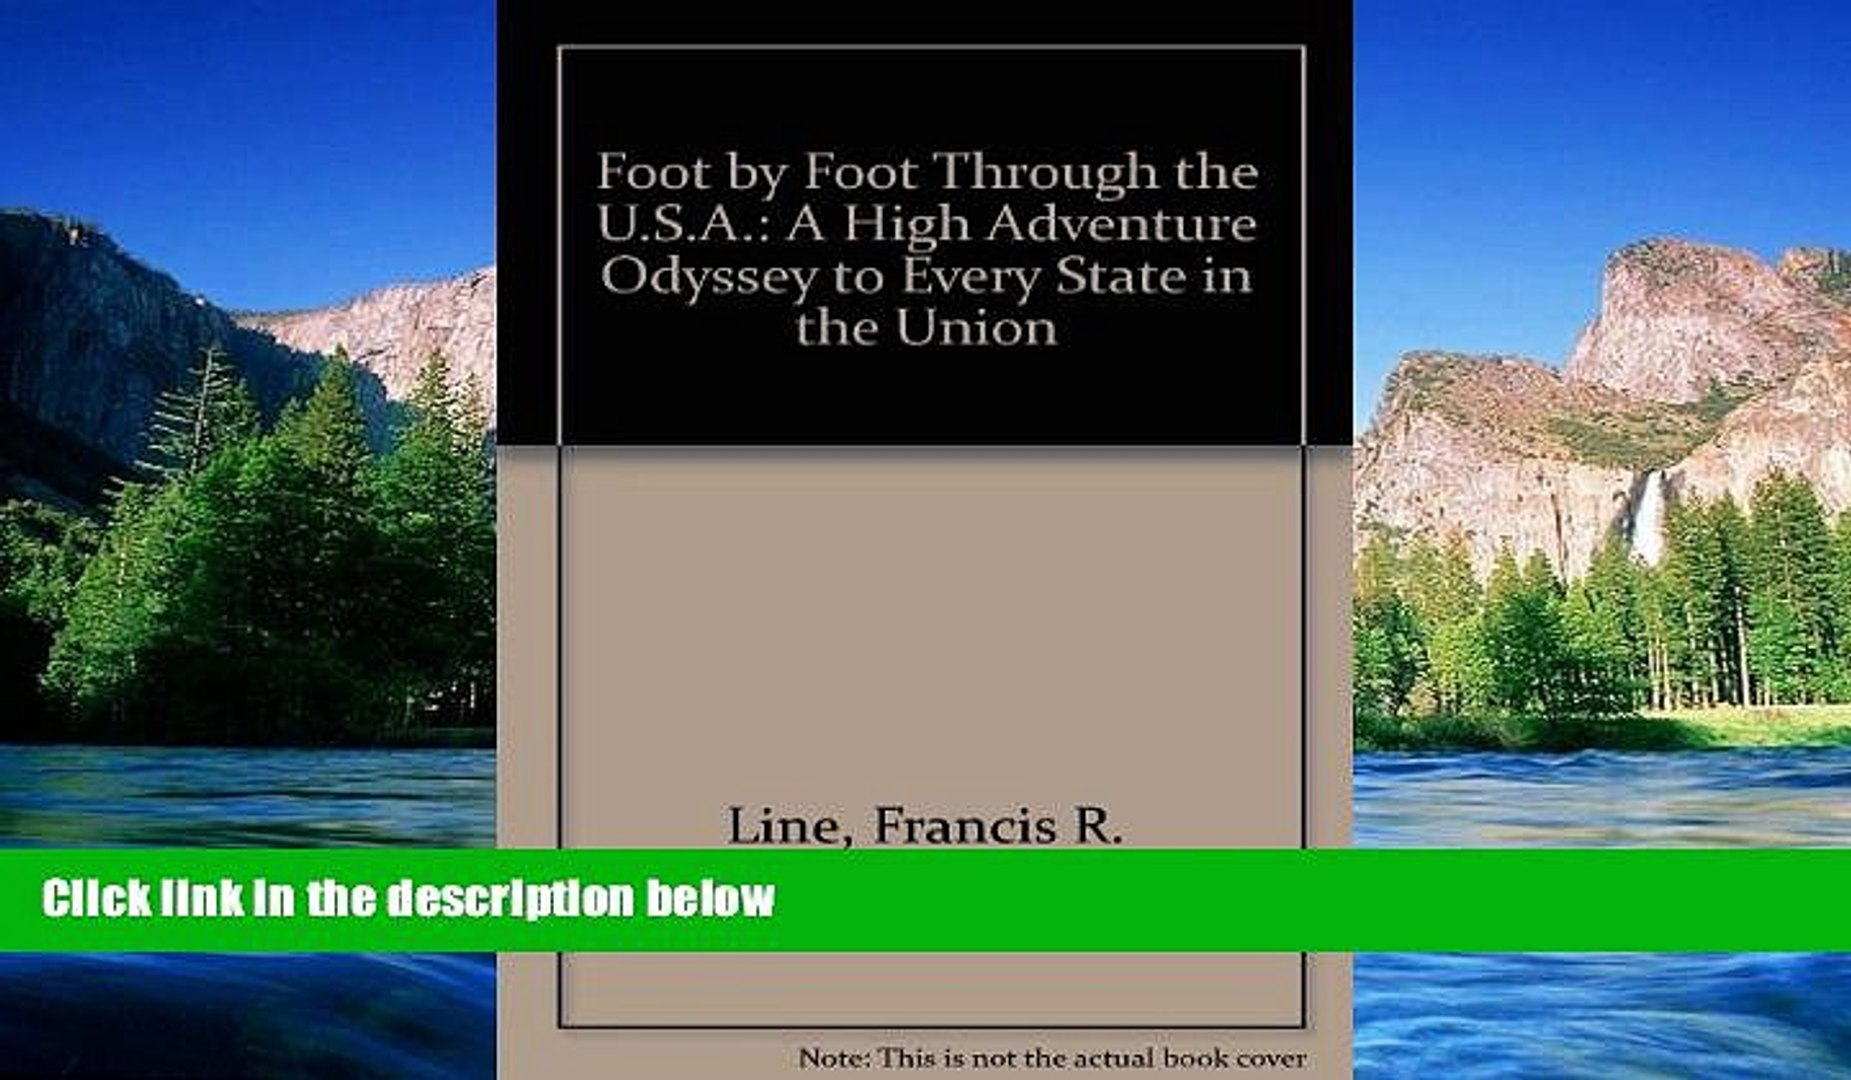 READ FULL  Foot by Foot Through the U.S.A.: A High Adventure Odyssey to Every State in the Union